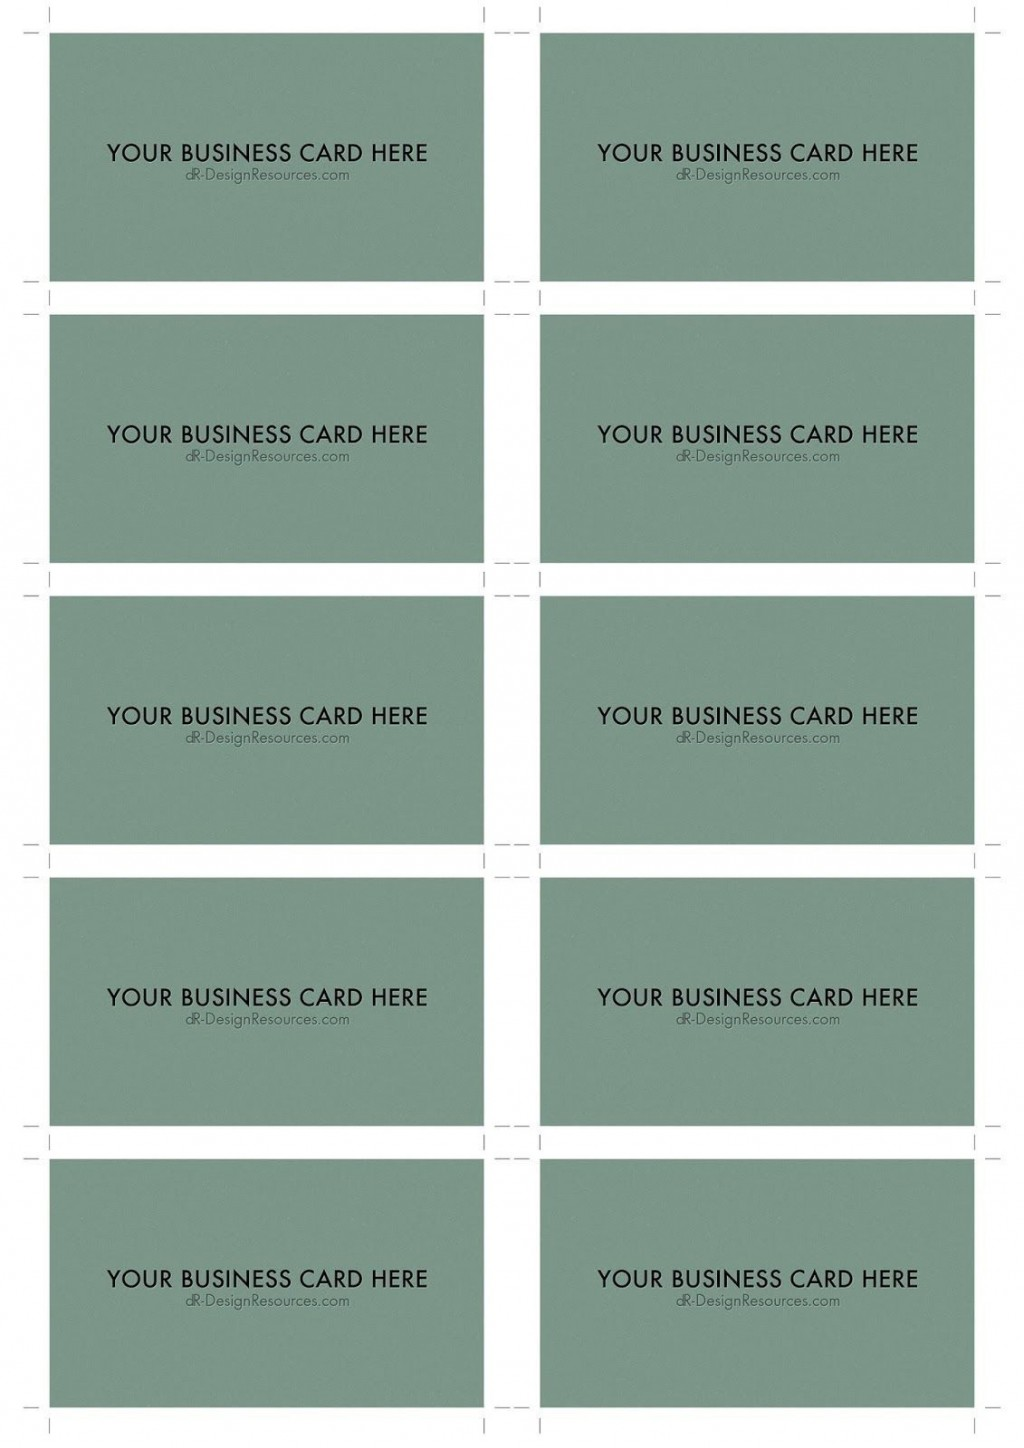 000 Surprising Blank Busines Card Template Photoshop Inspiration  Free Download PsdLarge